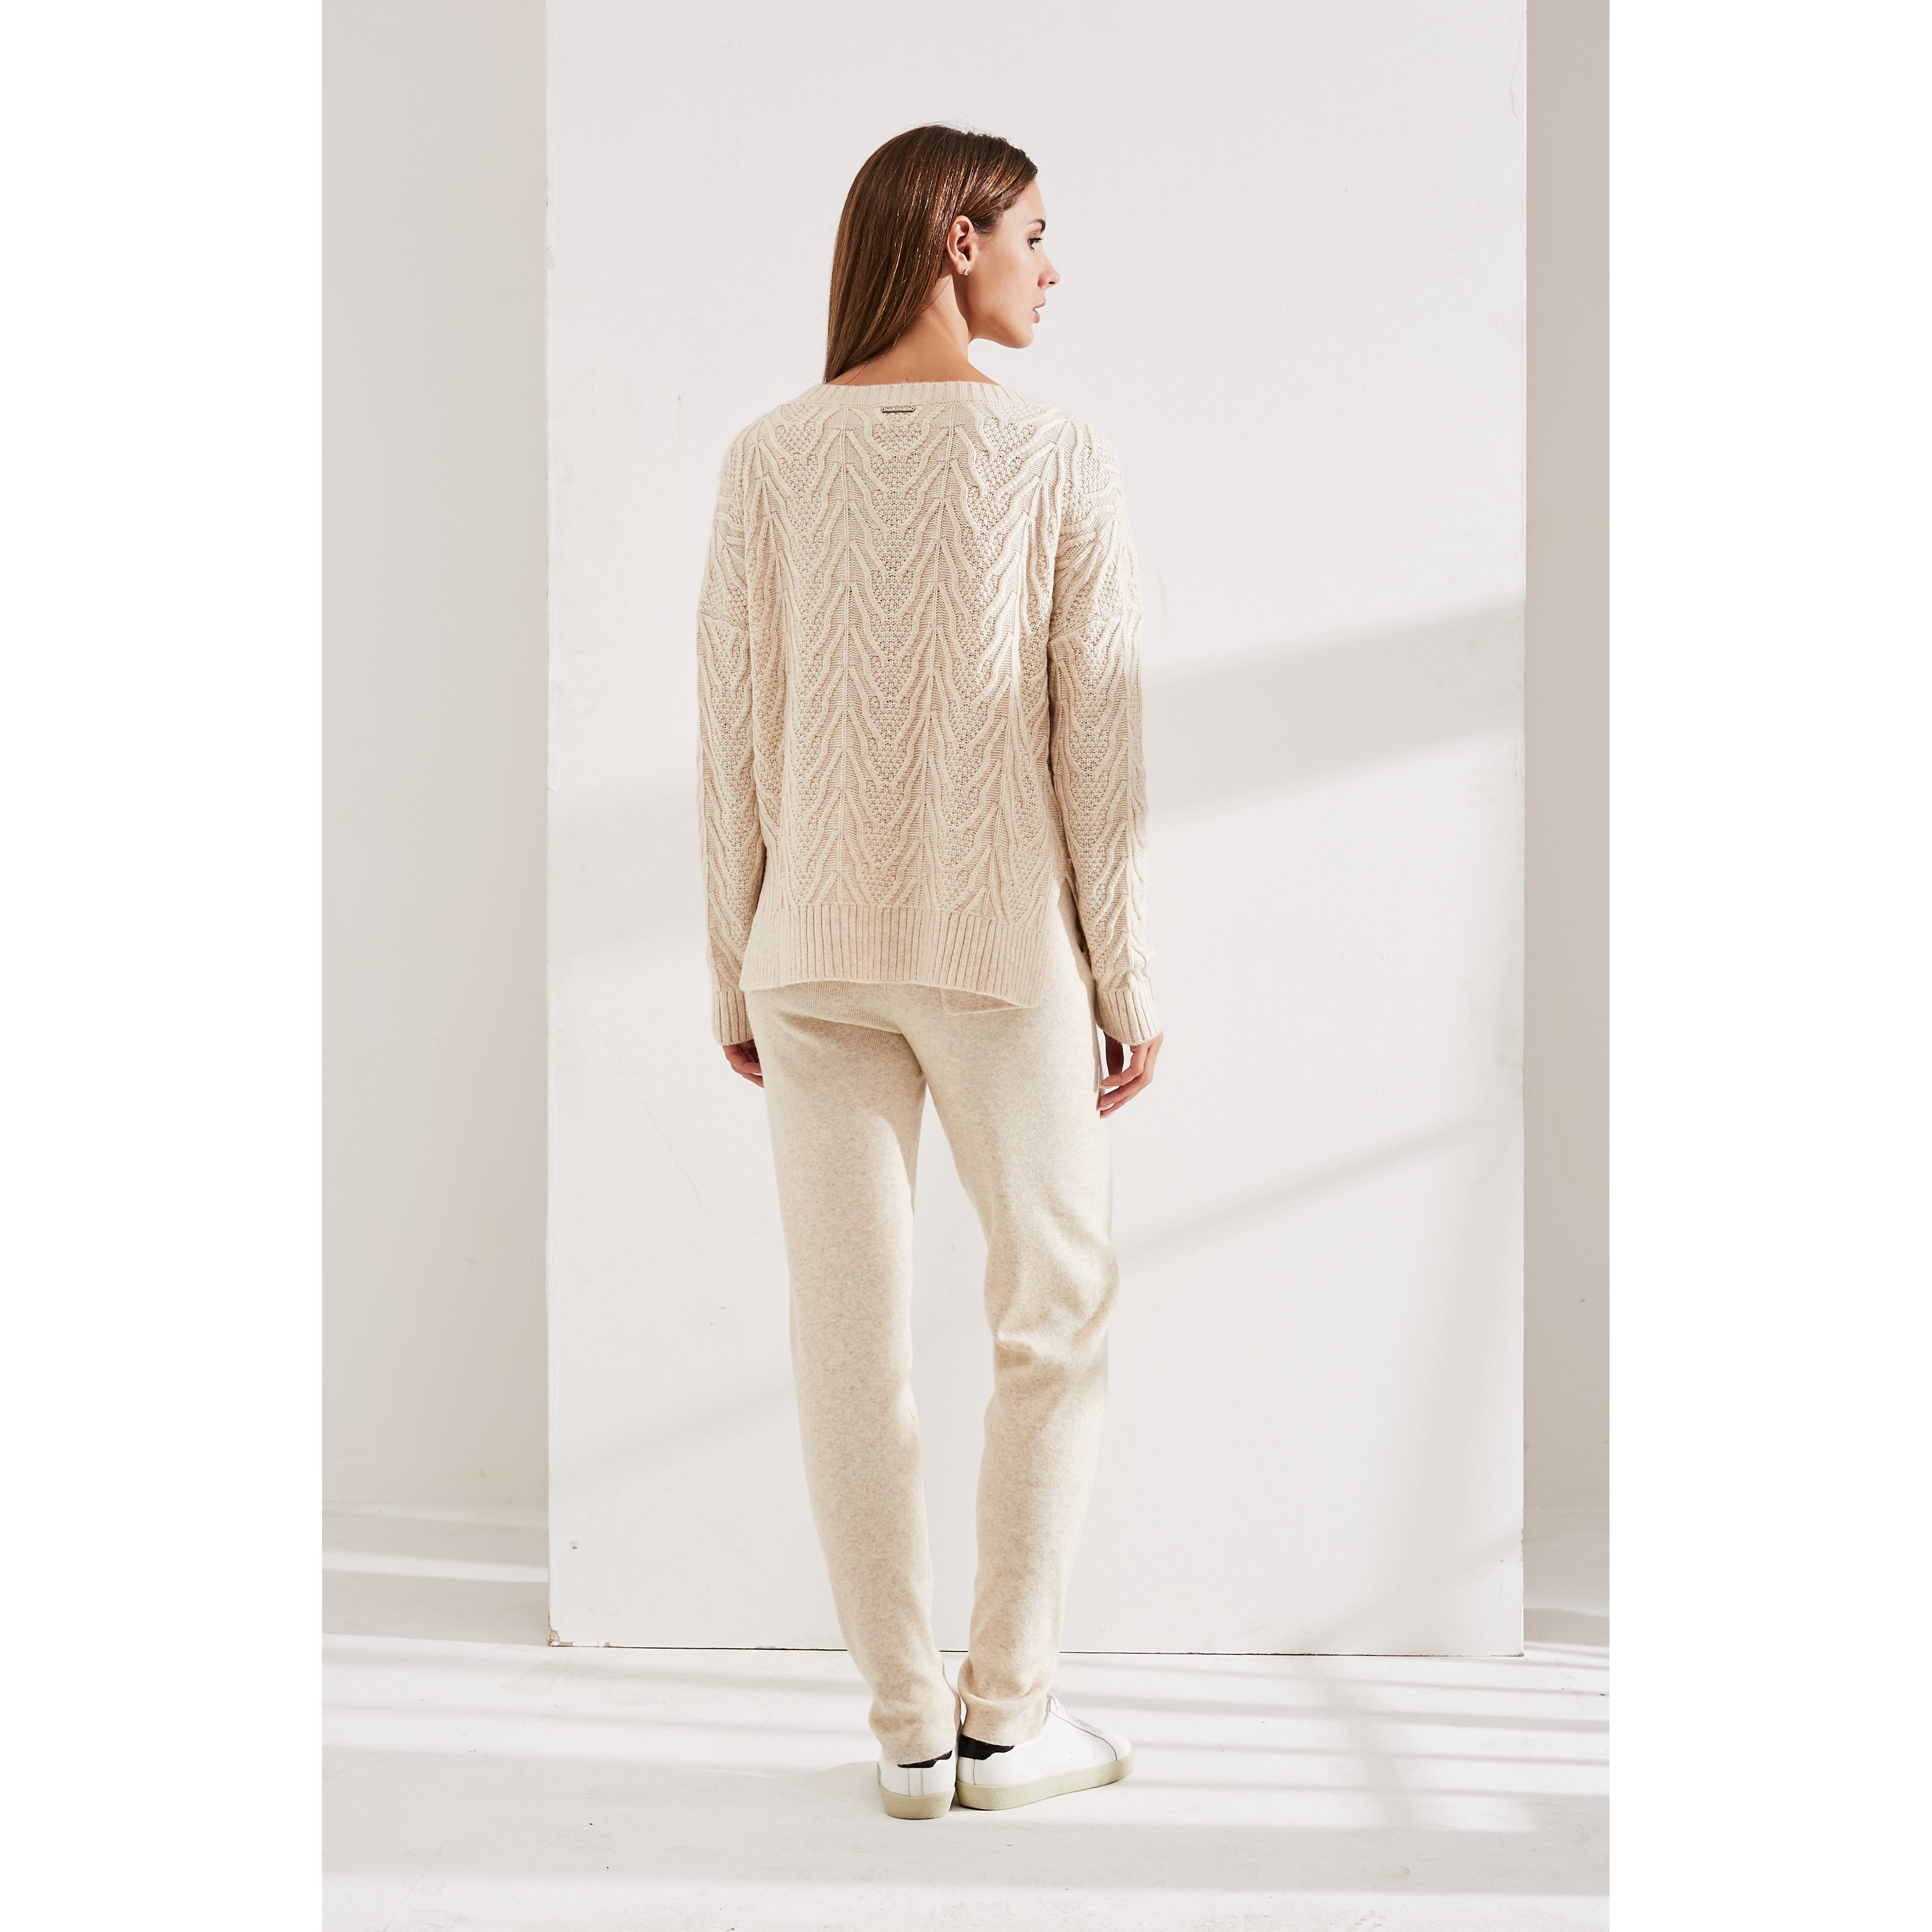 Beige Cashmere and Cotton Suit with Delicate Decor-INA VOKICH-HOUSE of BOTTA